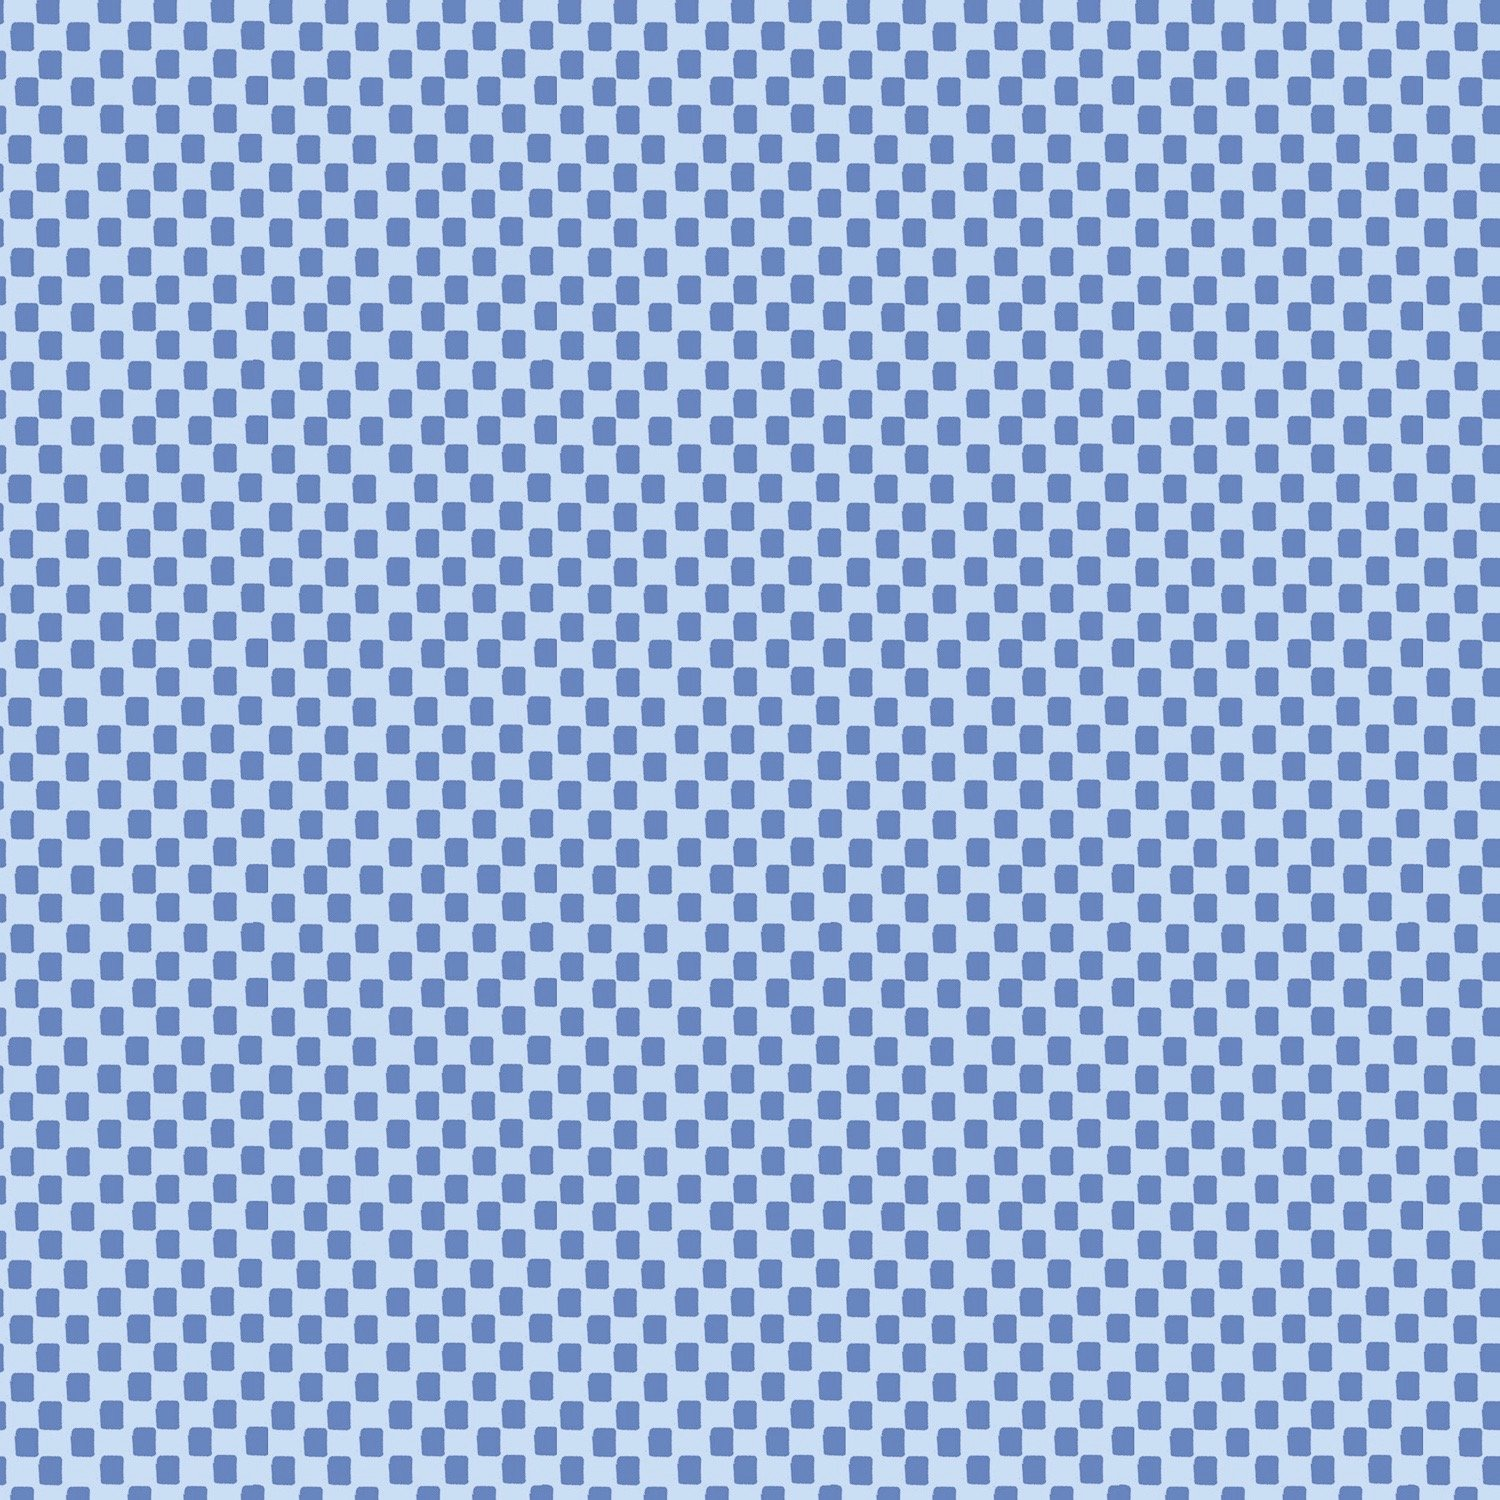 Rifle Paper Wildwood - Checkers (Blue)